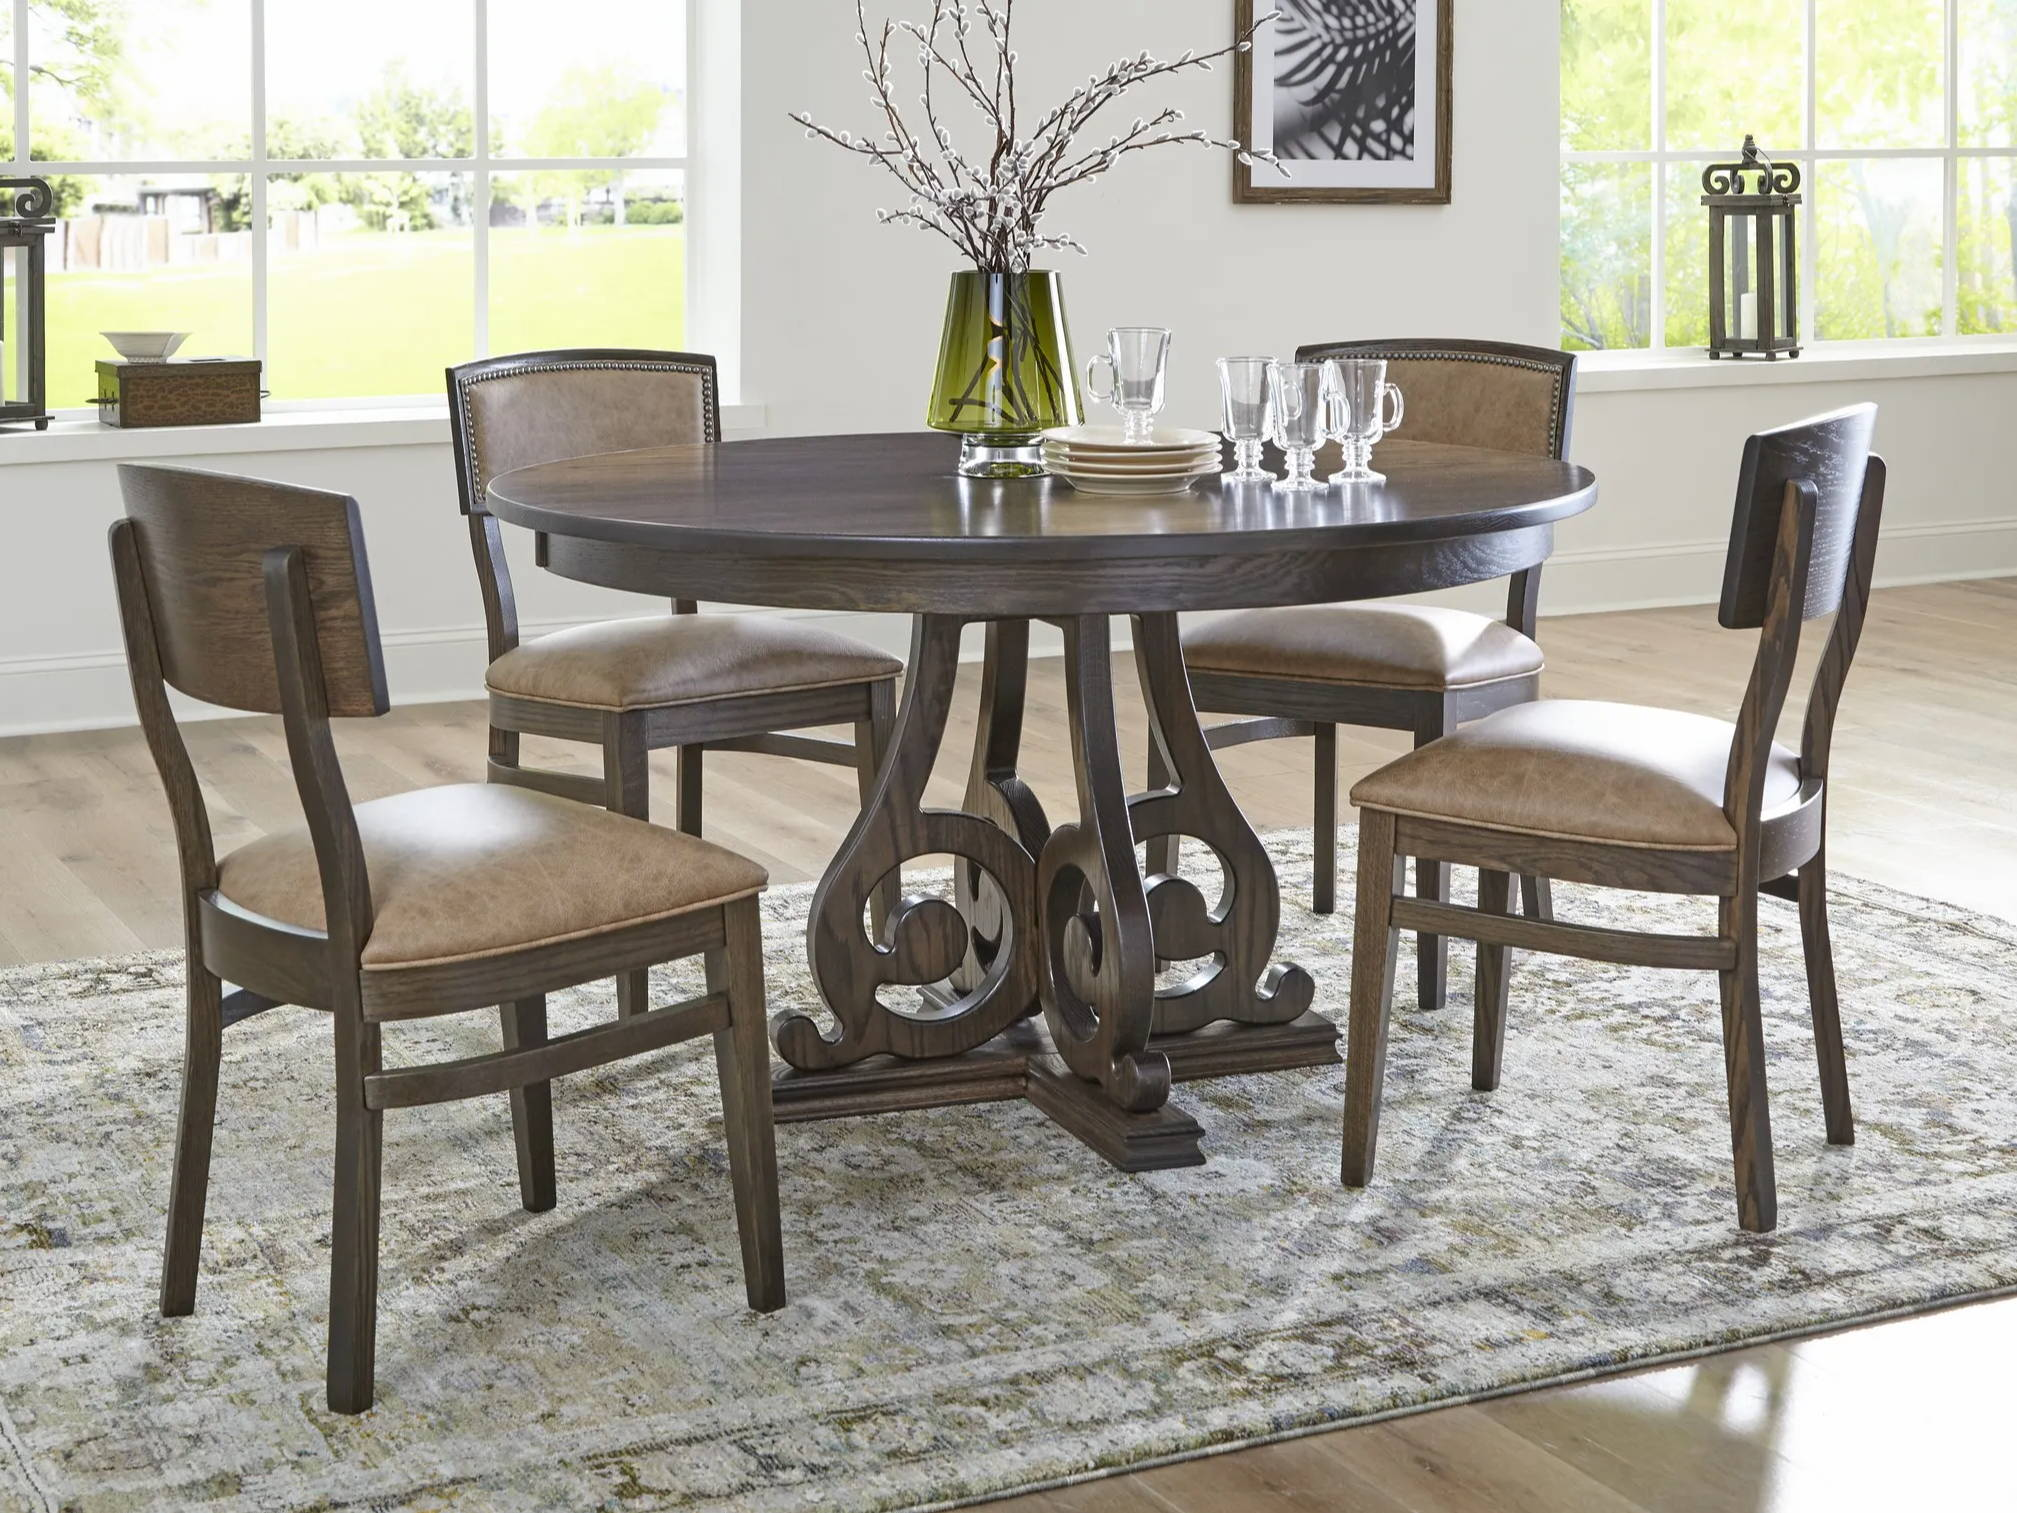 four wood chairs with upholstered seats around a round dining table